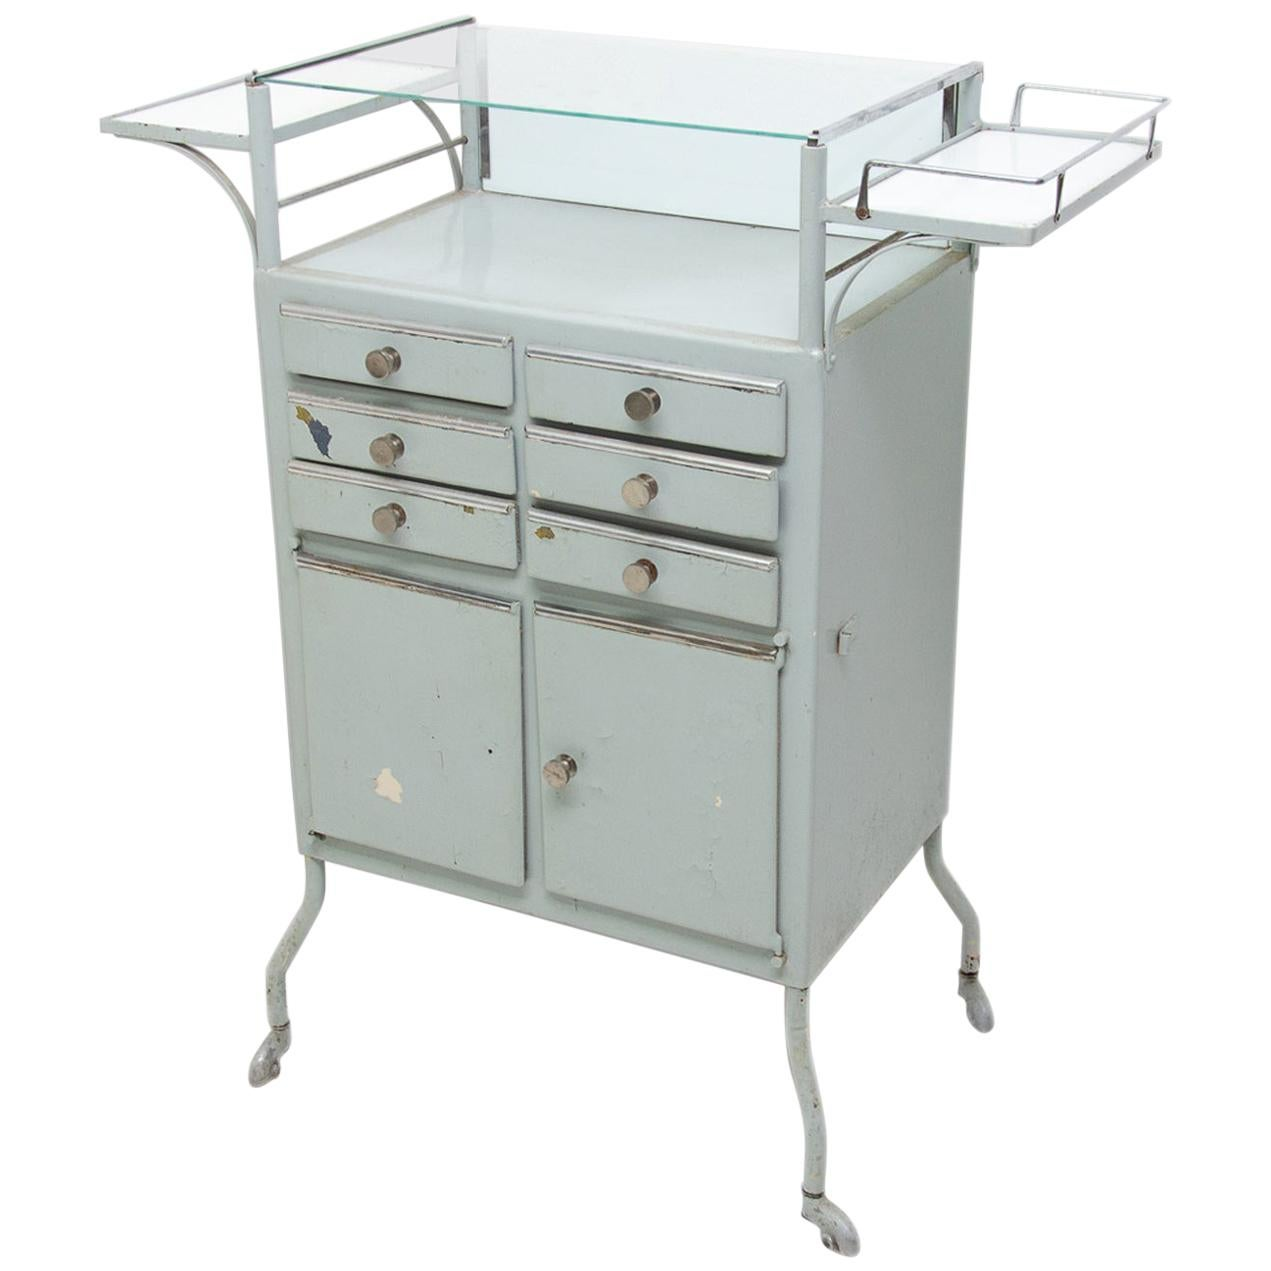 Vintage Metal Apothecary Cabinet on Wheels, 1960s